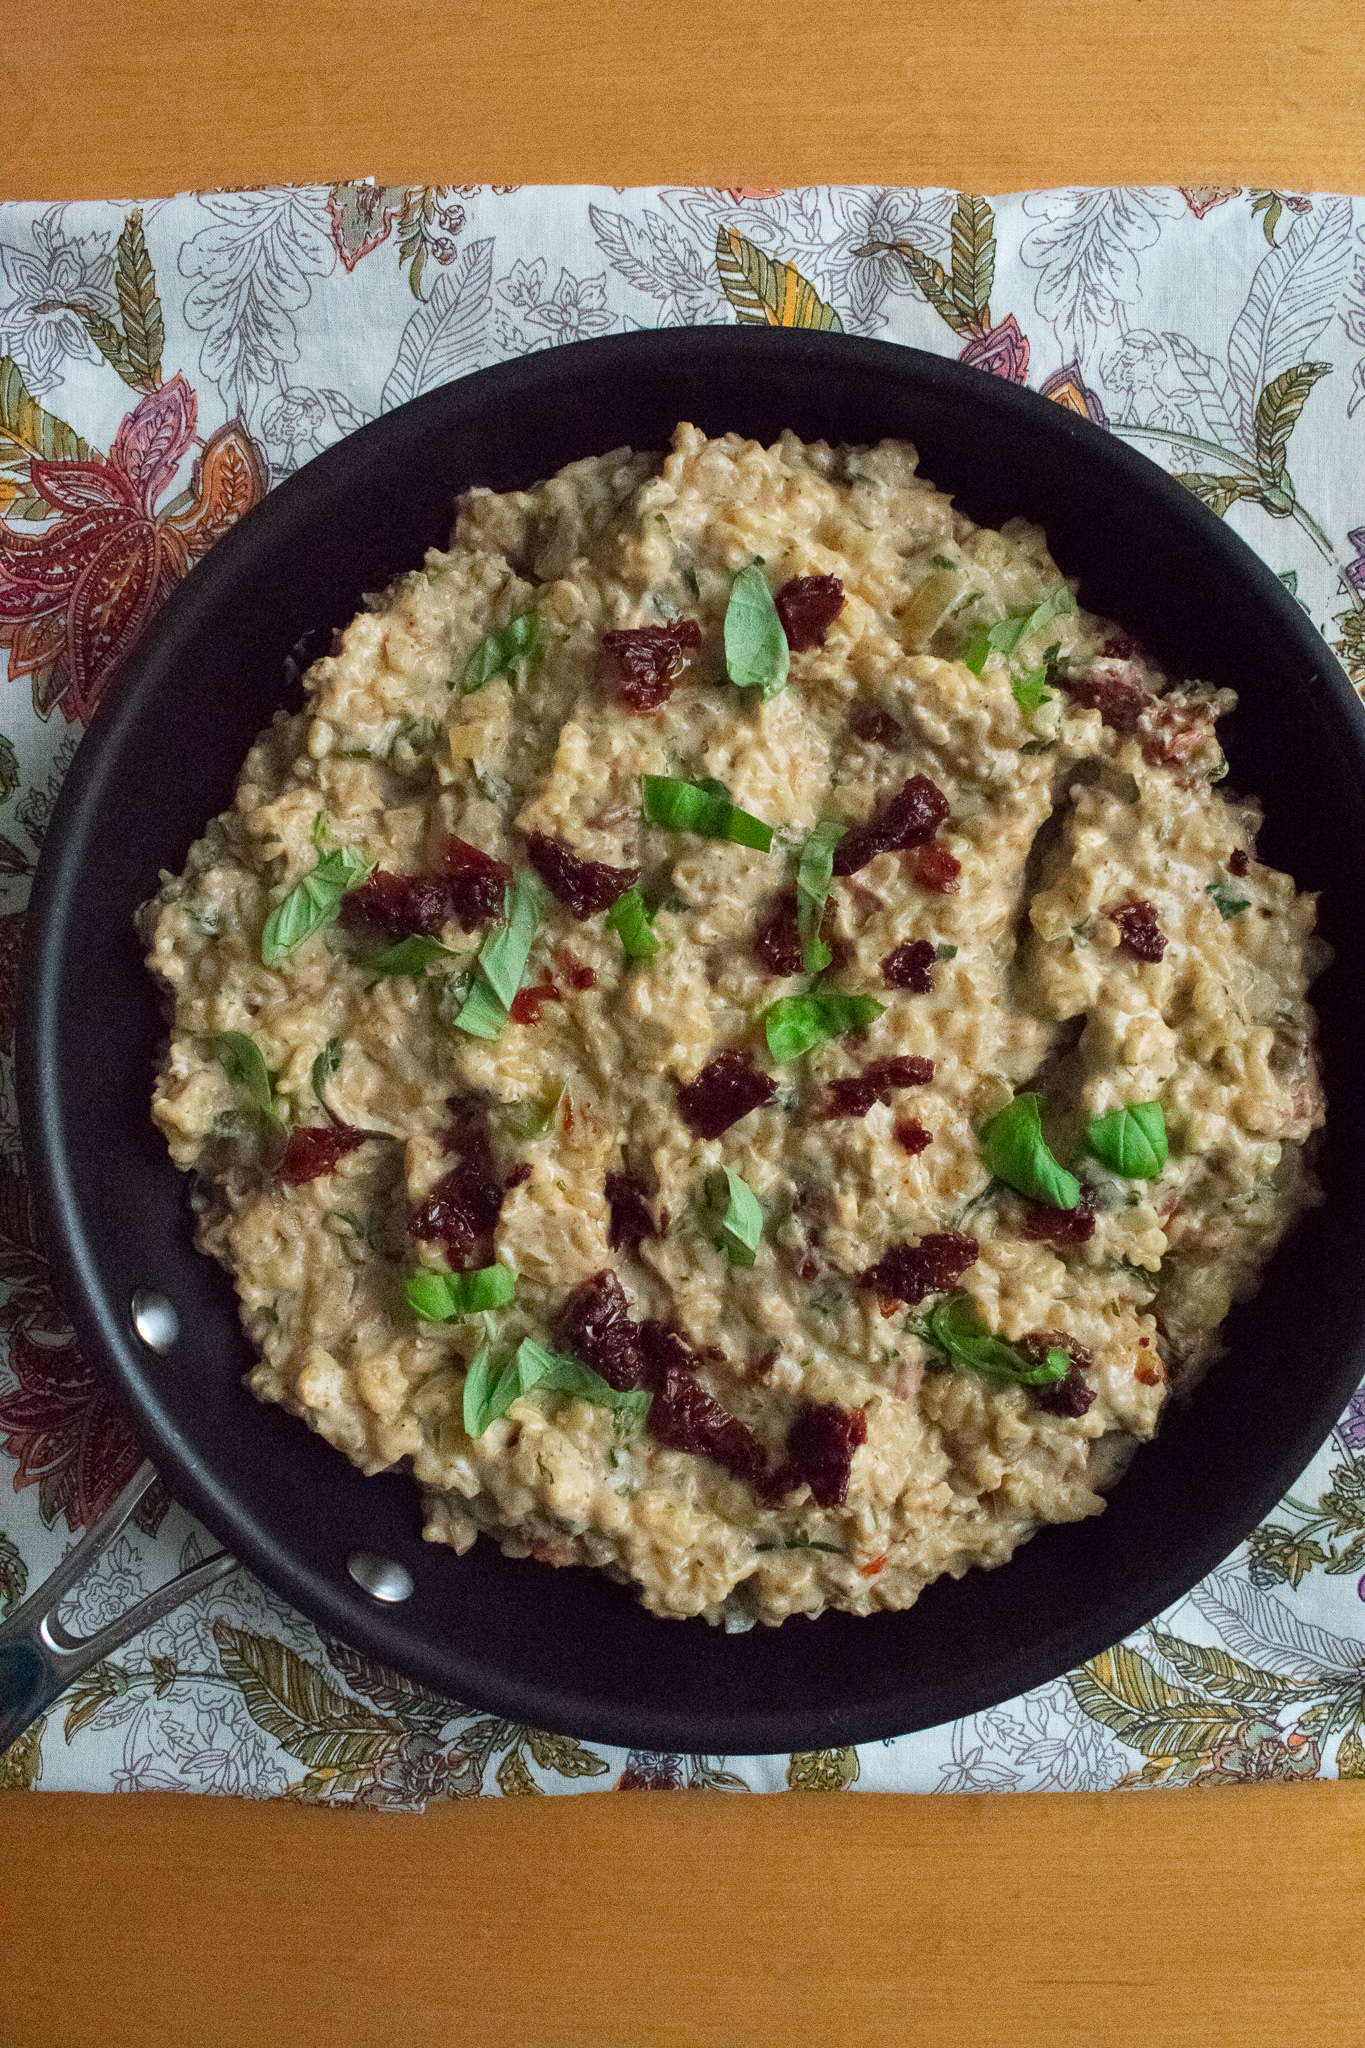 Creamy Rice with Sundried Tomatoes portrait.jpg